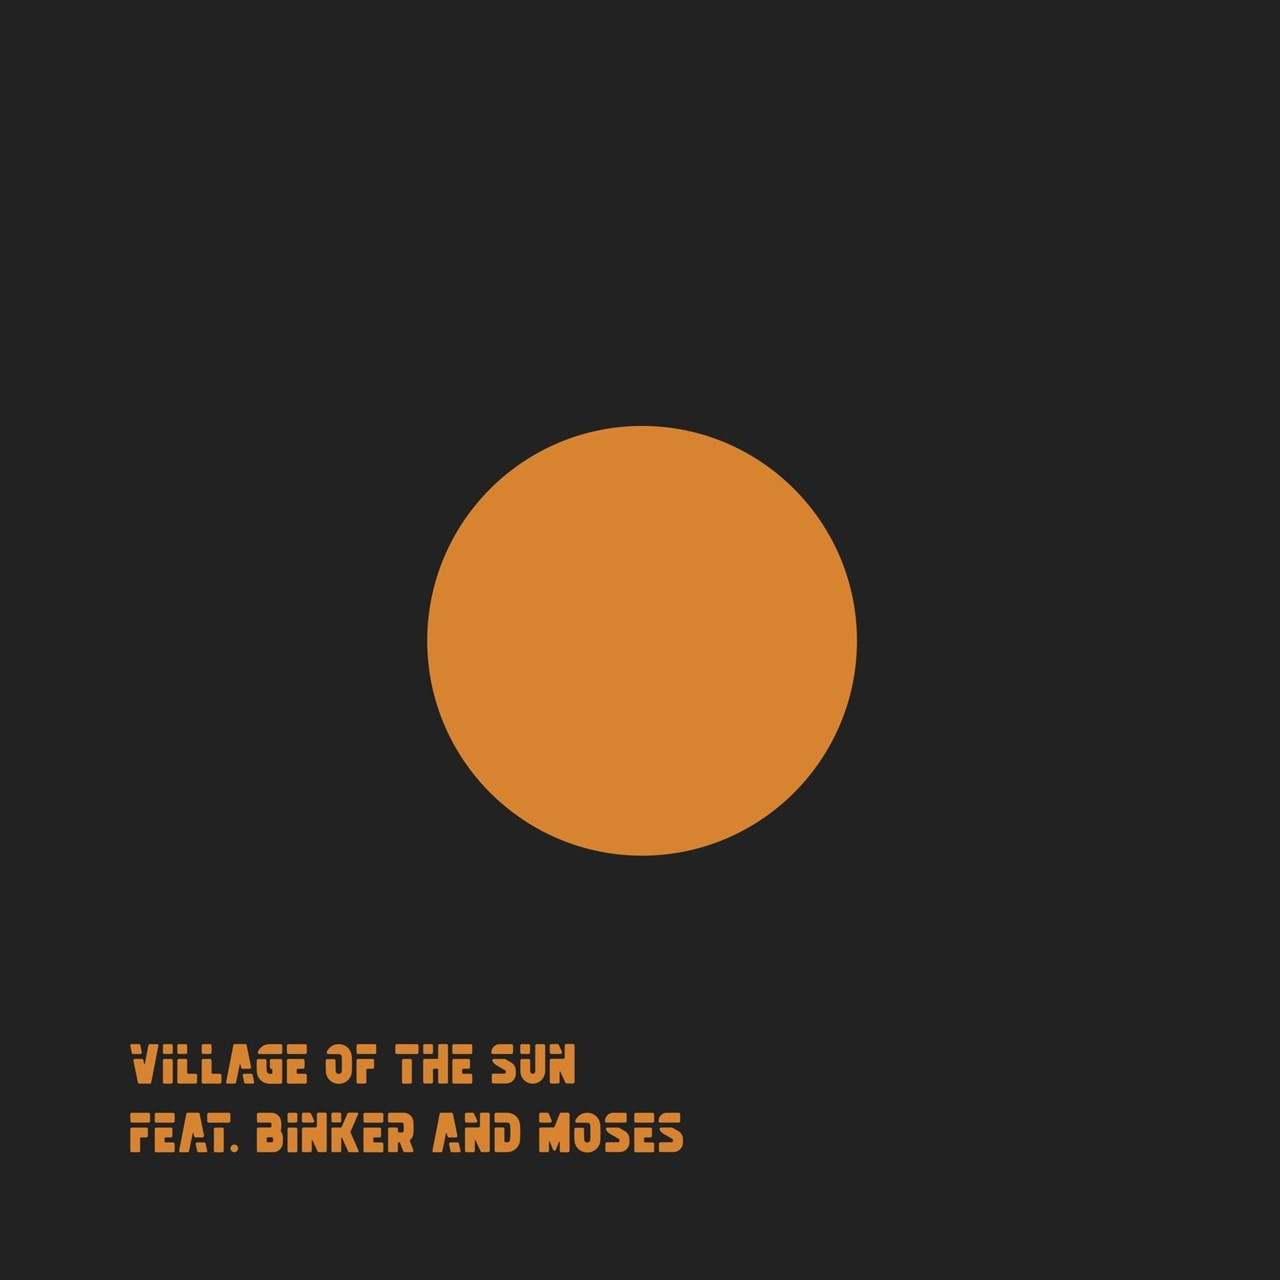 Village of the Sun/TED - 1